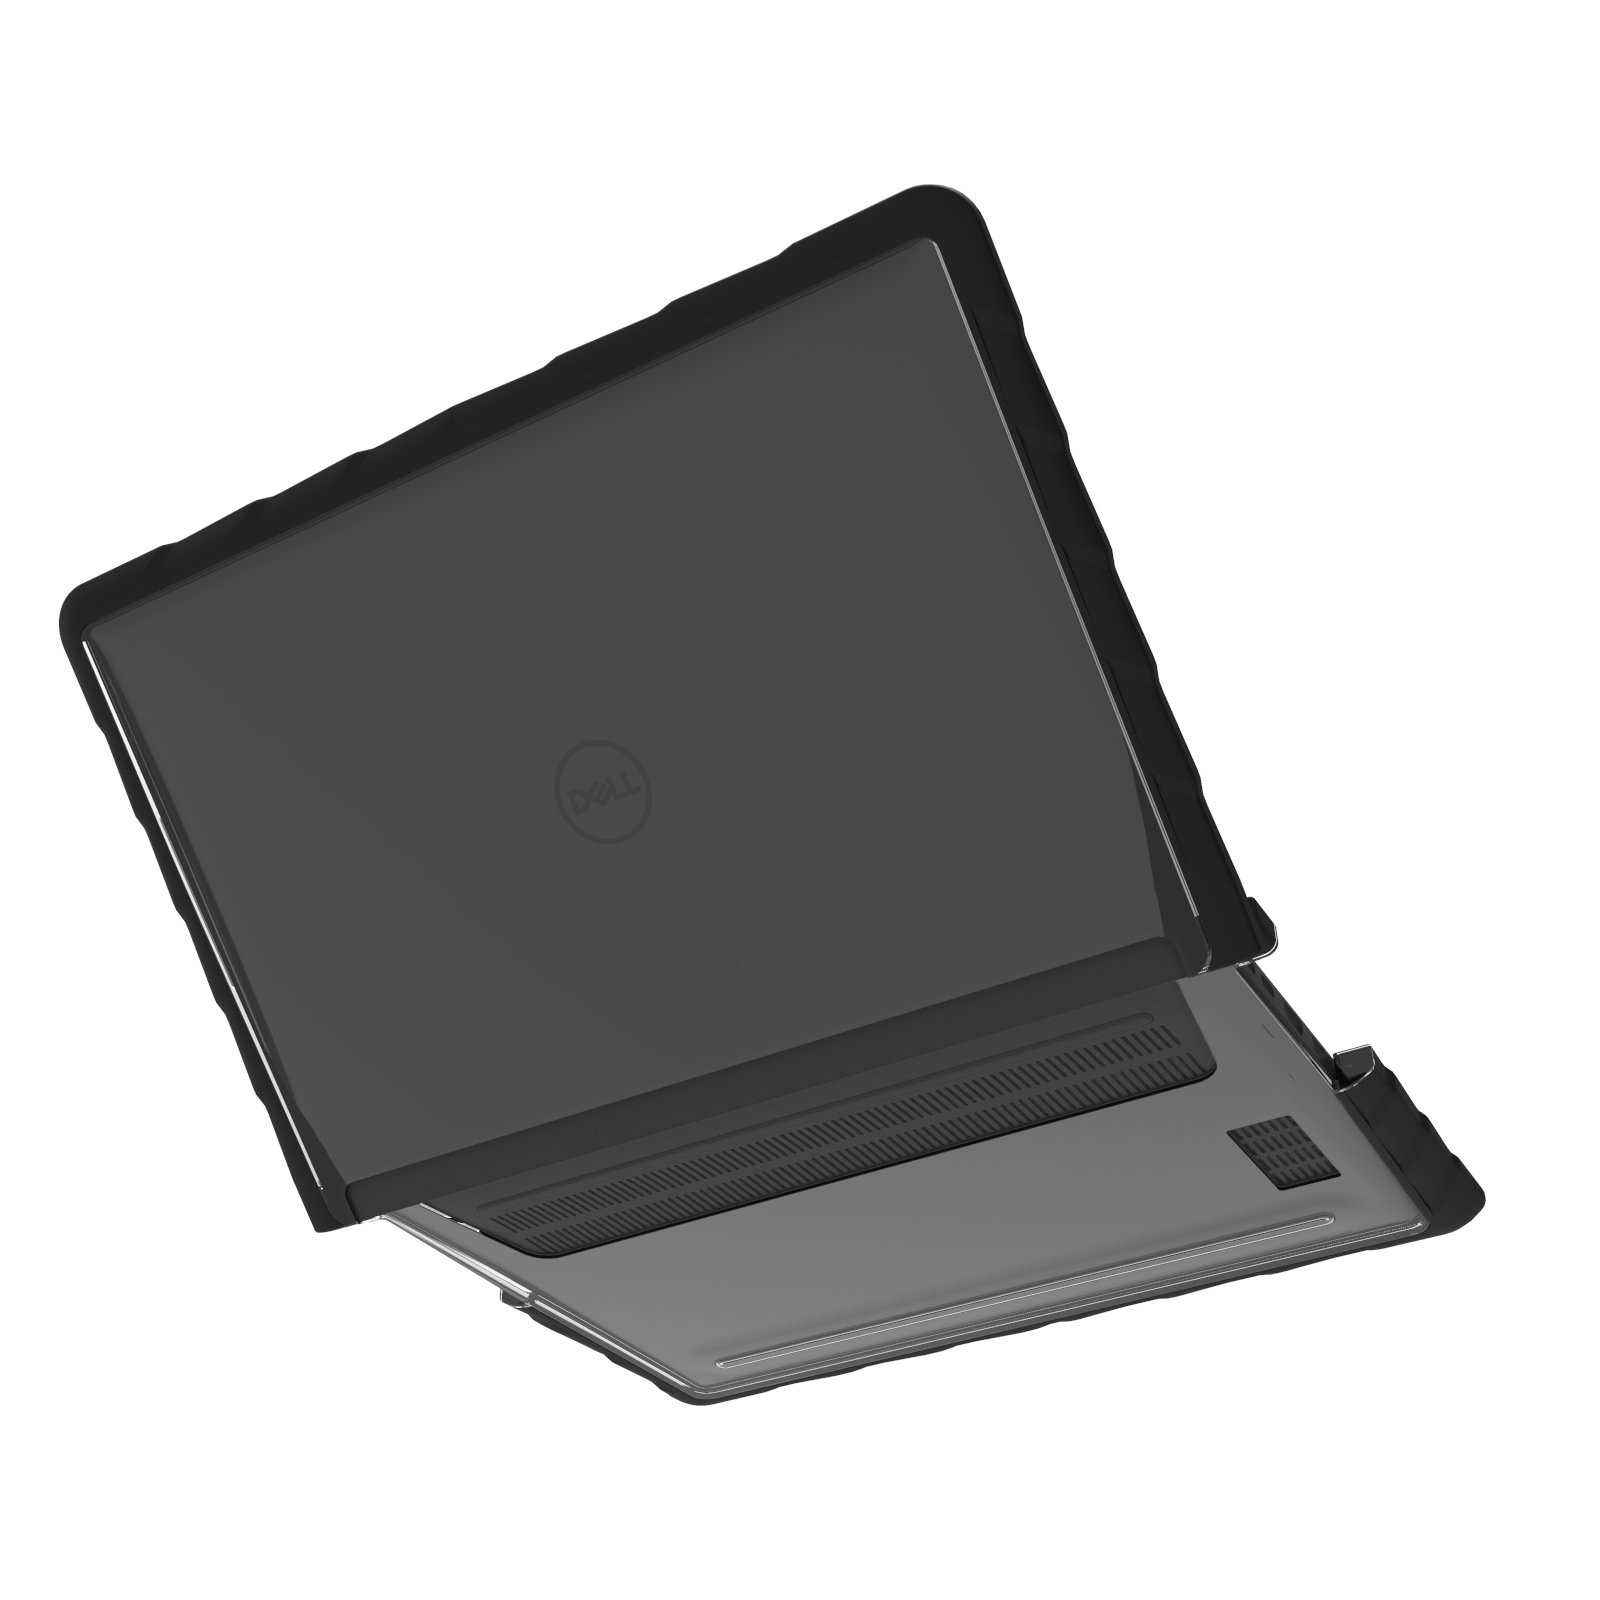 Gumdrop DropTech Case Designed for Dell Latitude 7389 and 7390 13 Inch 2-in-1 Laptop for K-12 Students, Kids - Black, Shock Absorbing, Extreme Drop Protection by Gumdrop Cases (Image #7)